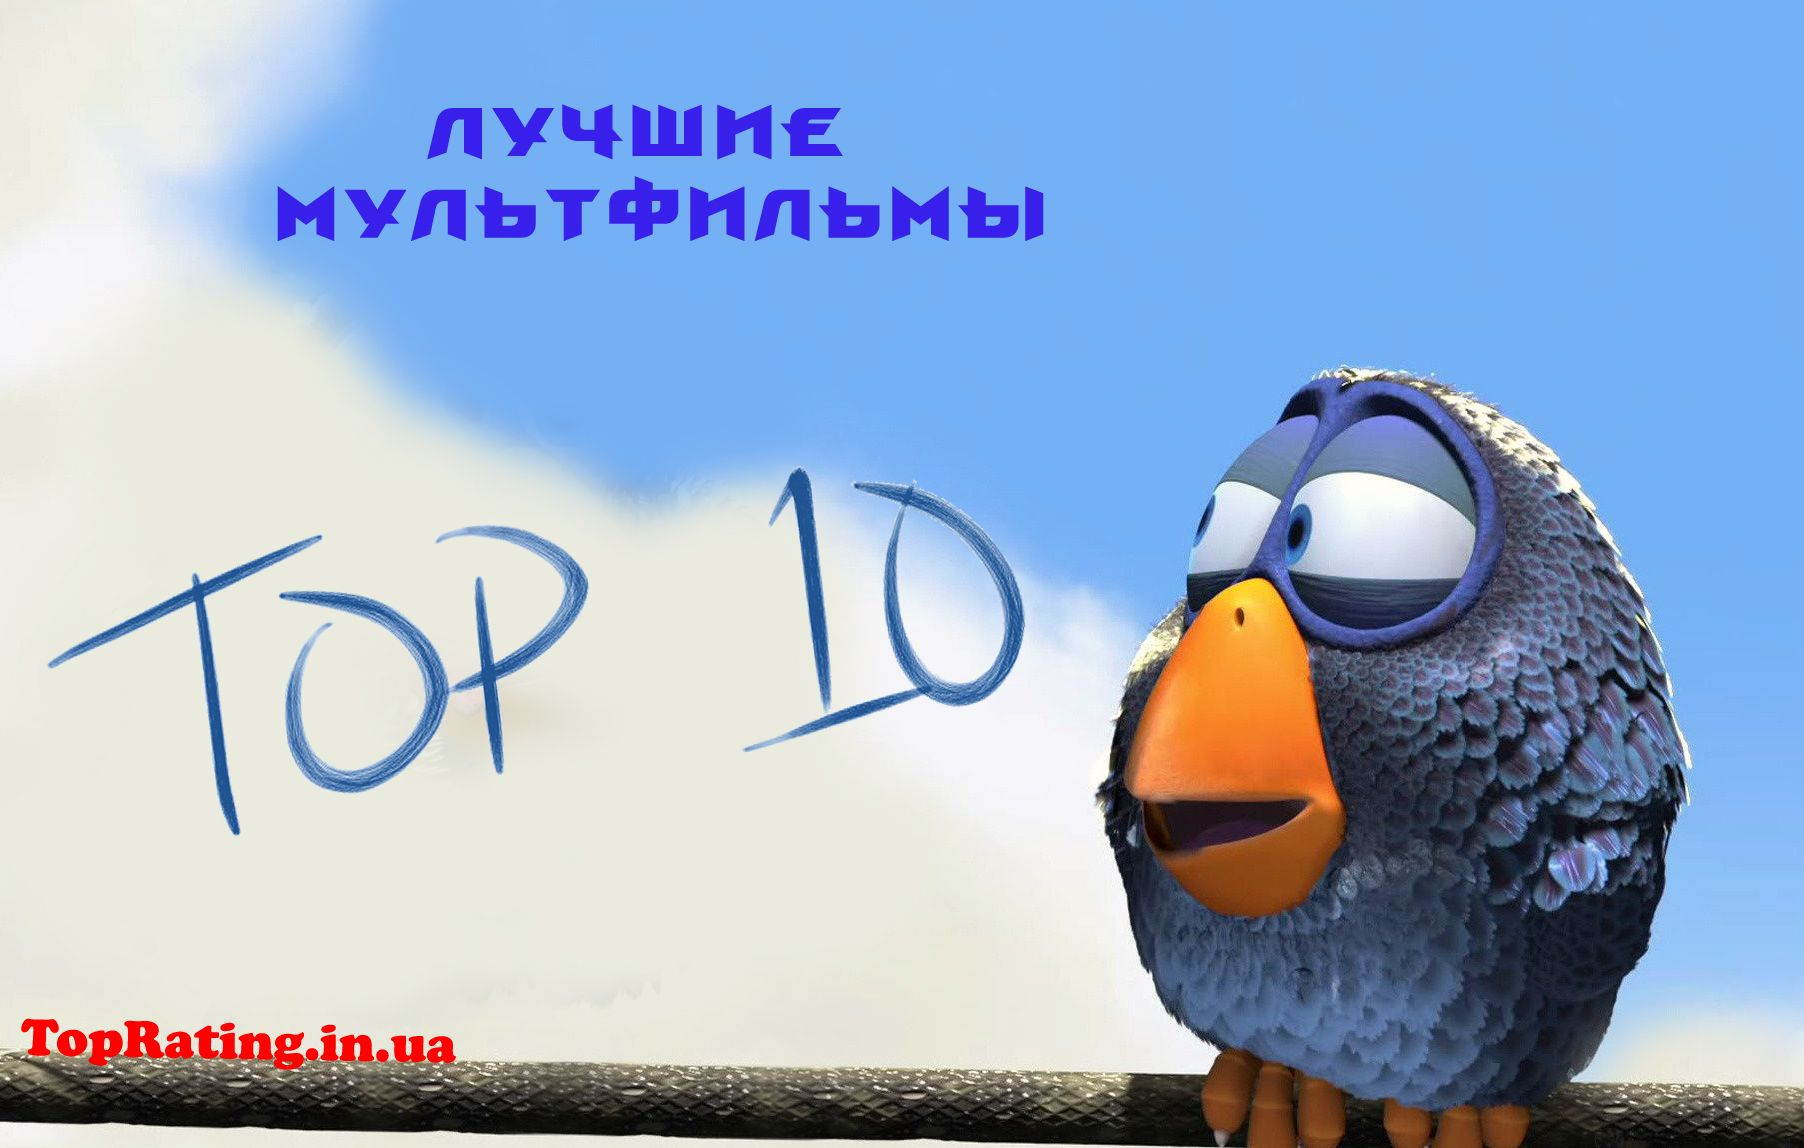 http://toprating.in.ua/wp-content/uploads/2014/12/top-10_rating_multfilmi.jpg